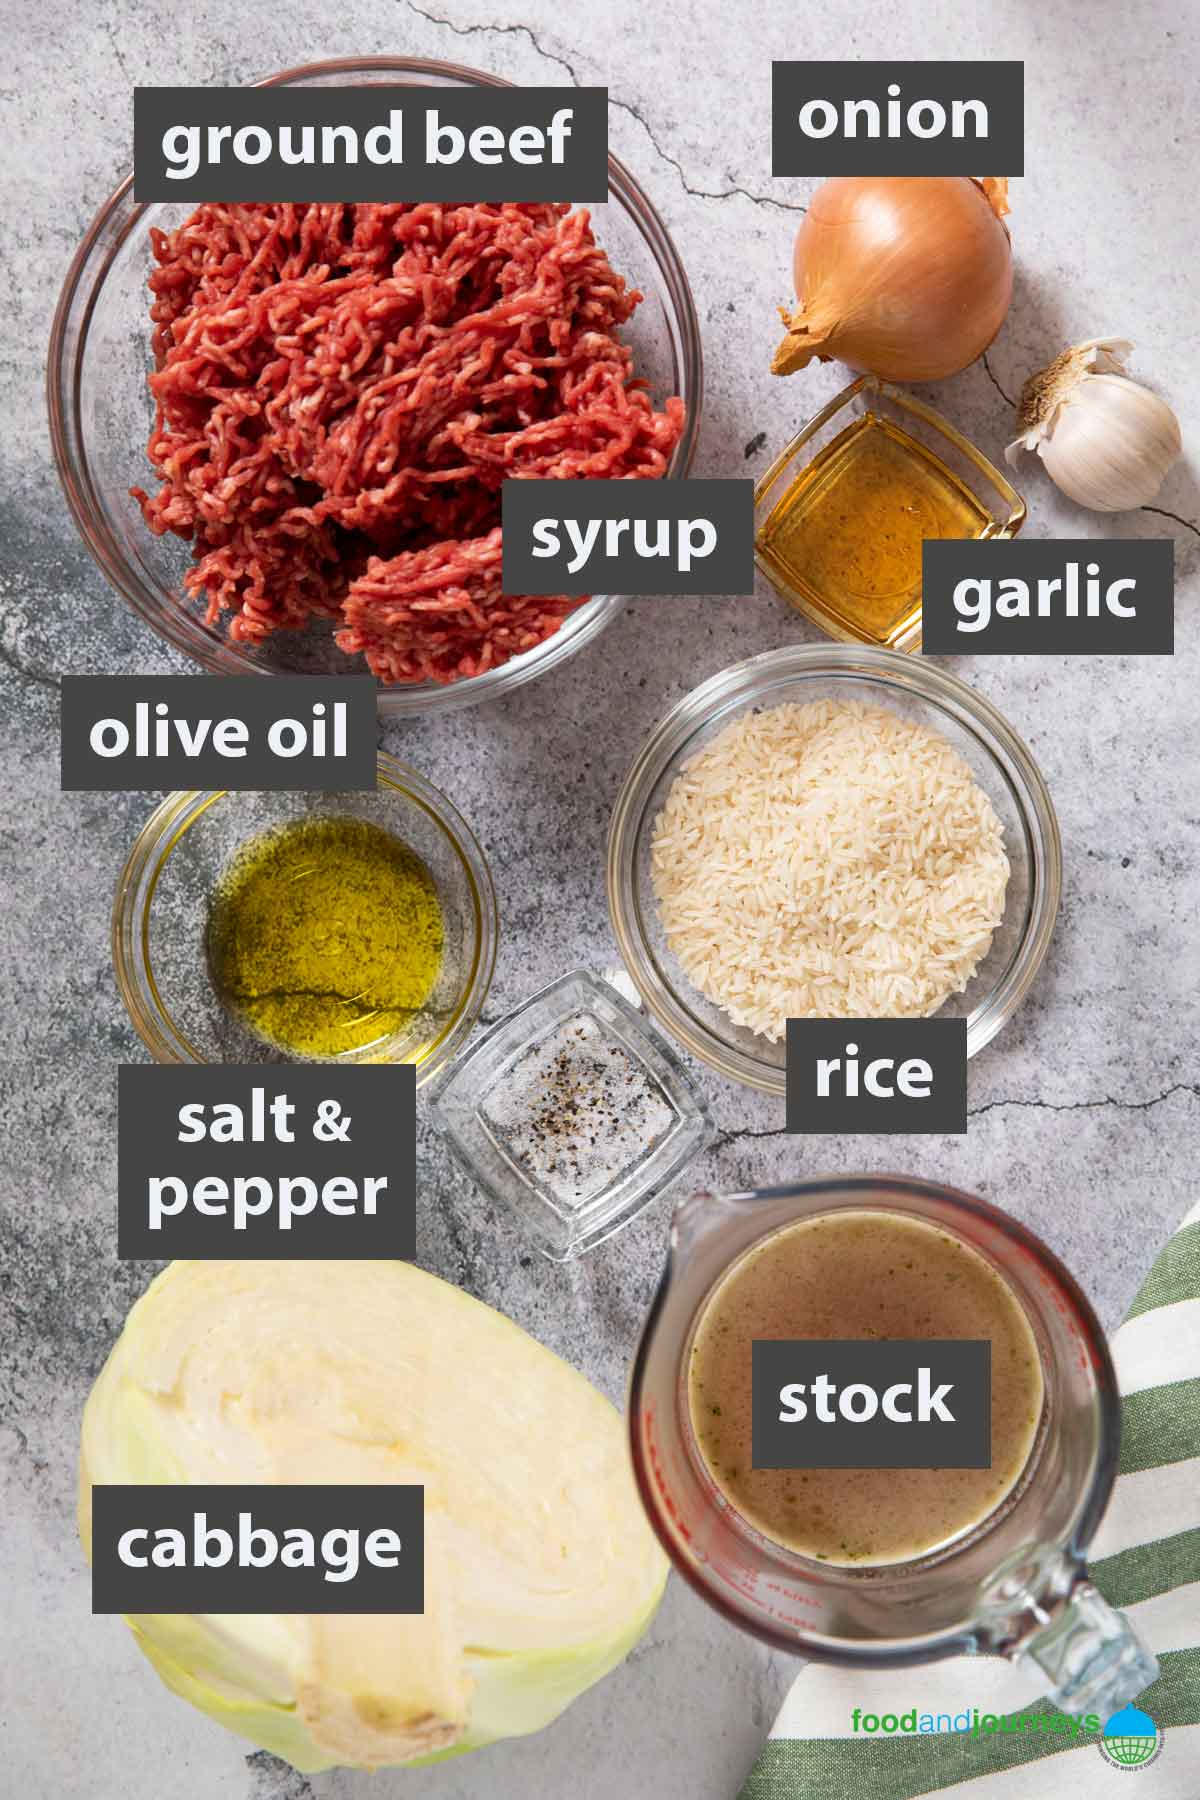 An image showing all the ingredients you need to prepare ground beef and cabbage casserole.